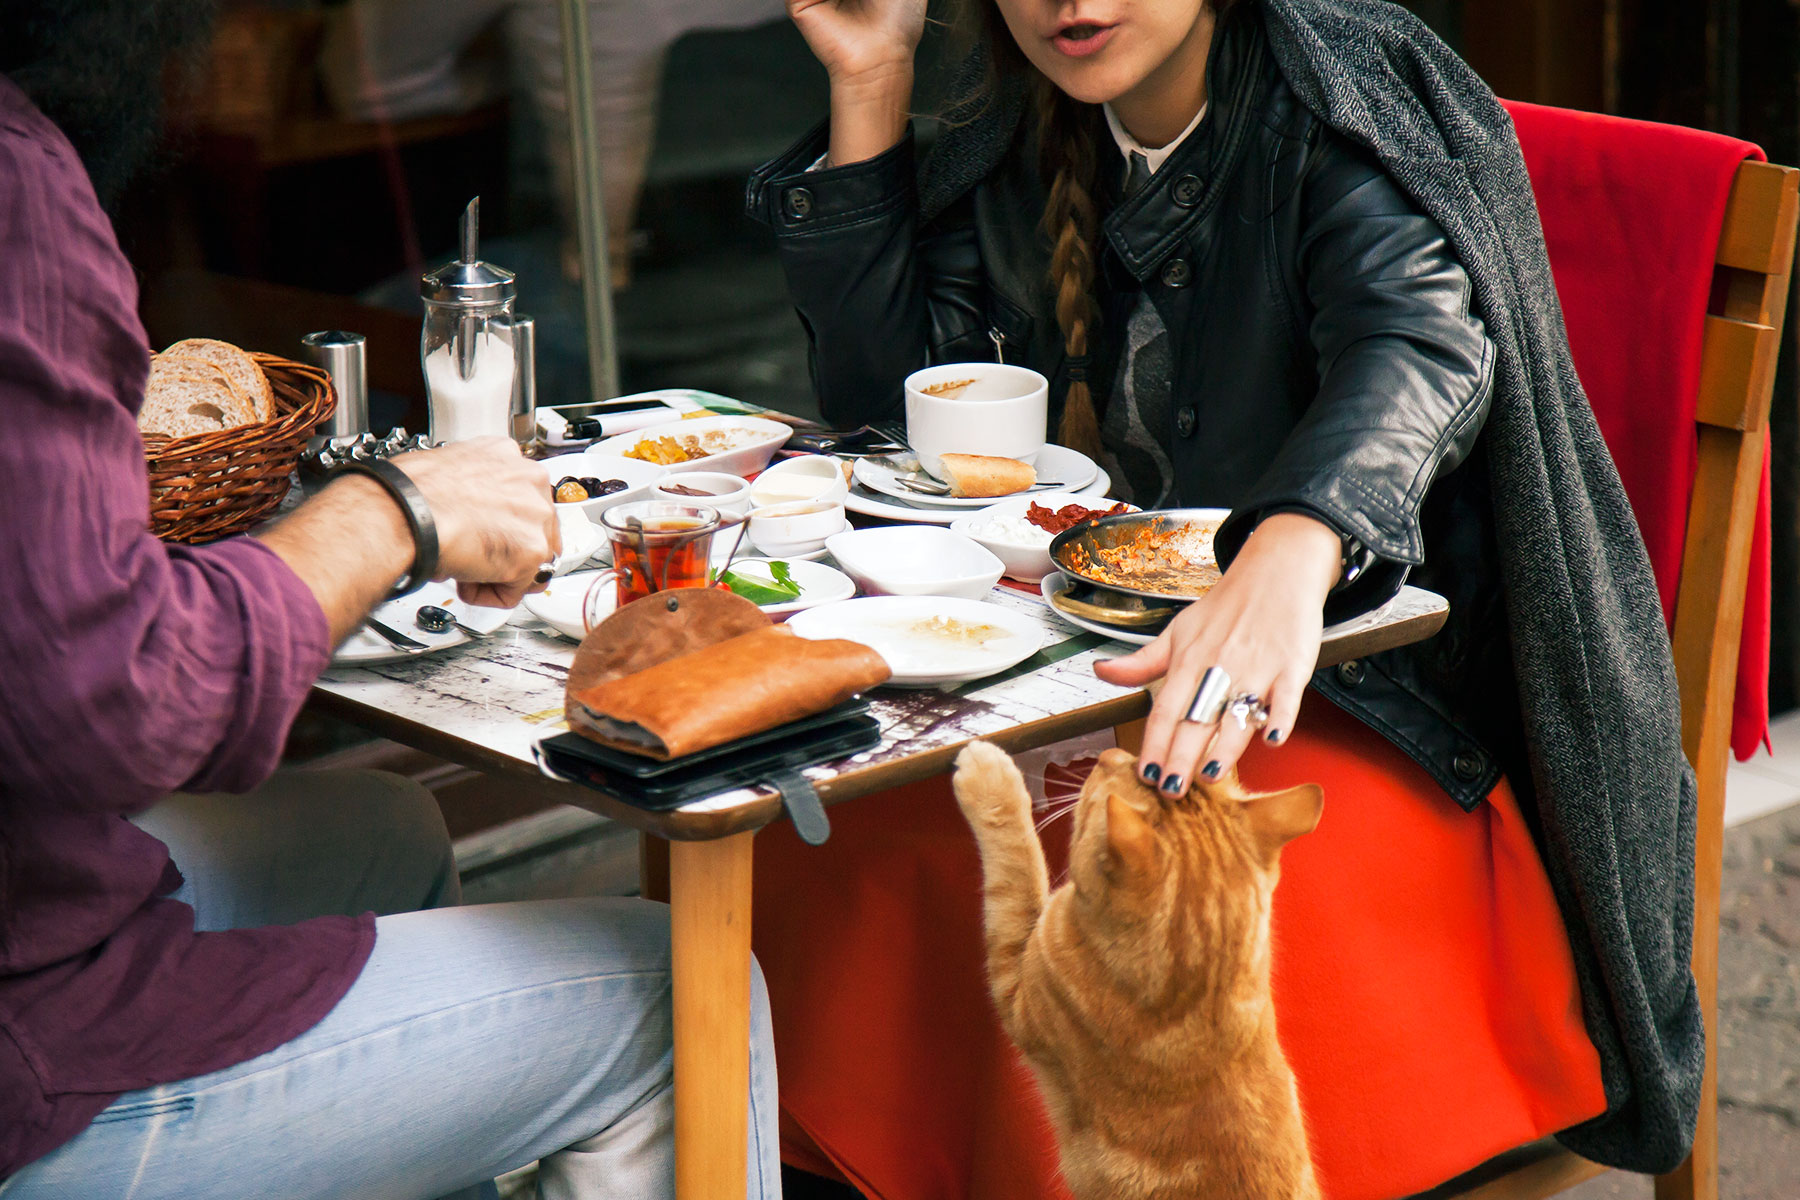 Istanbul-is-known-for-its-many-street-cats-always-looking-for-food